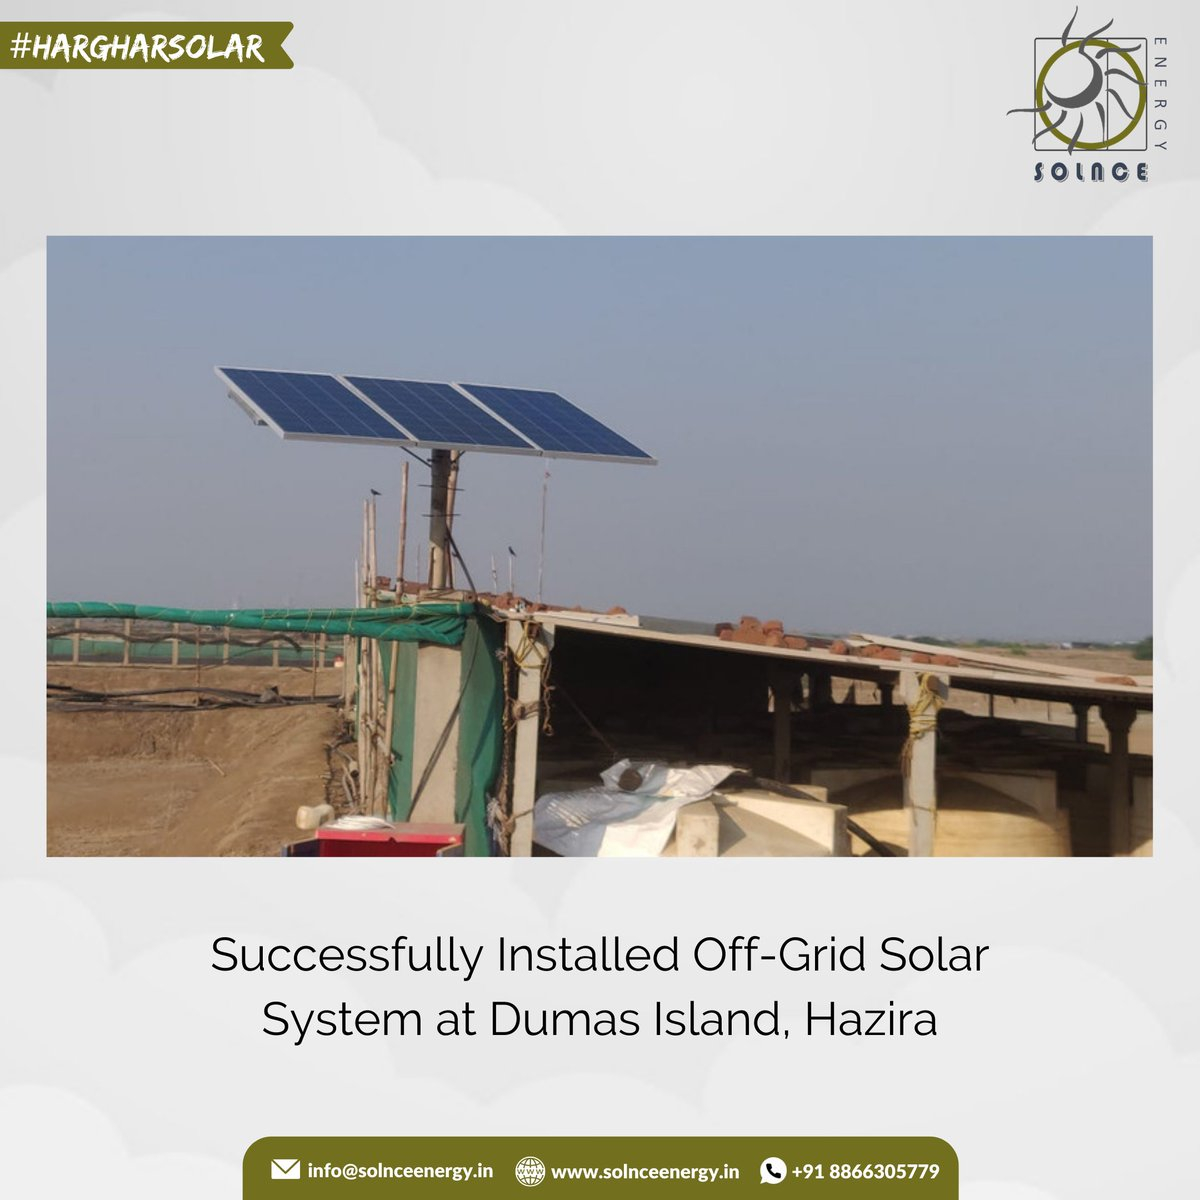 Successfully Installed Off-Grid Solar System at Dumas Island 🏝️  #gogreen #gosolar #offgrid #offgridsolar #solarrooftop #solarpower #solarpanels #solaredge #renewableenergy #energyiseverything #energy #dumas #clientdiaries #solarbattery #luminous #solarproject #clientproject